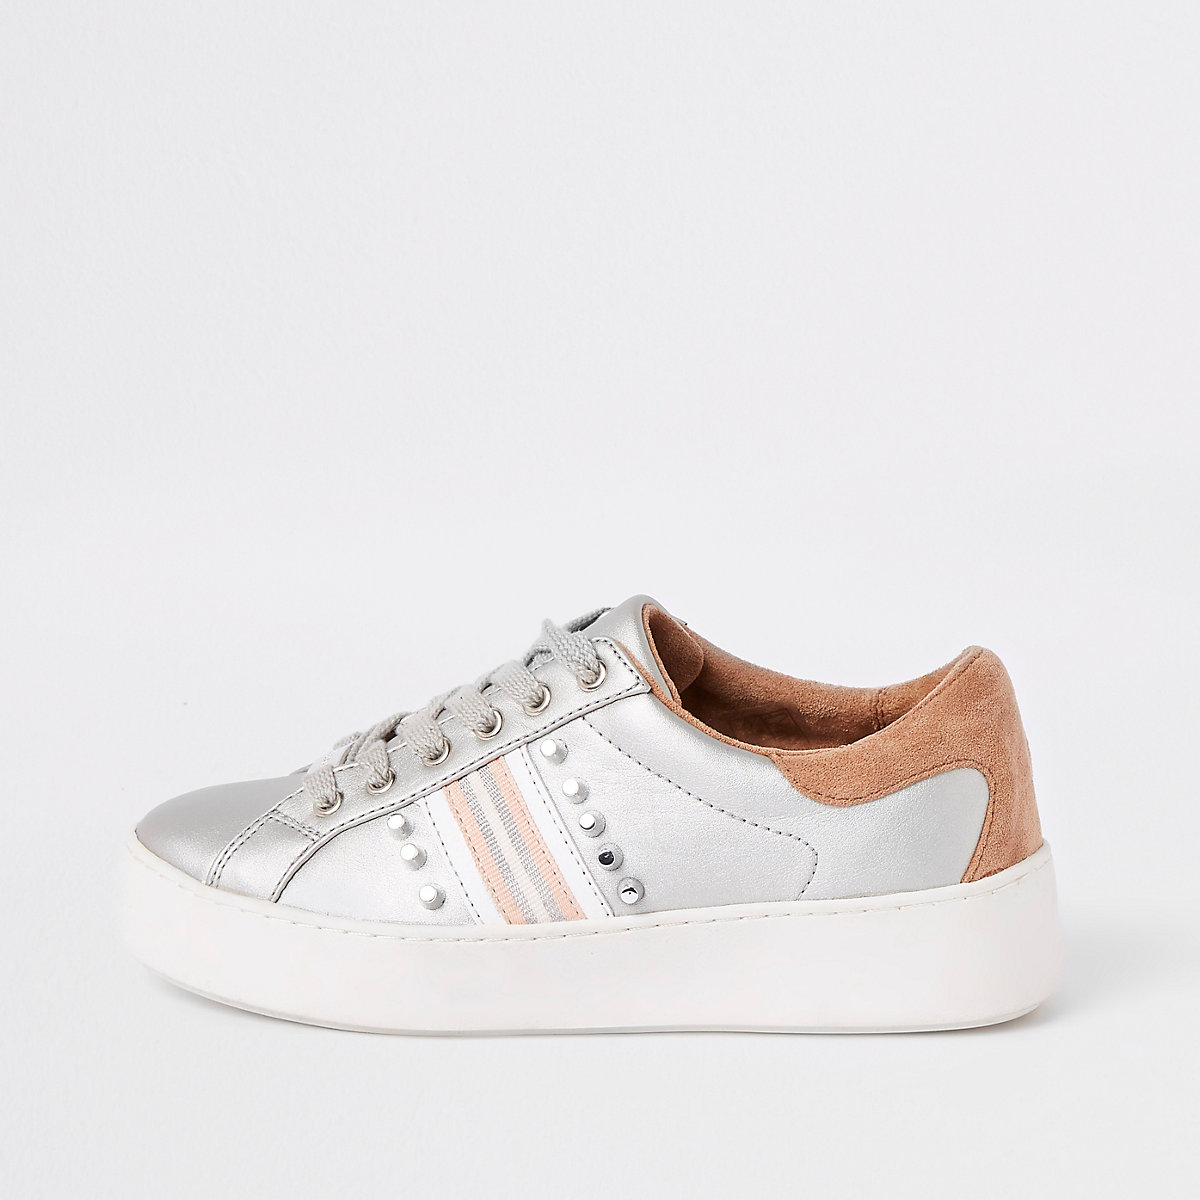 Silver stud embellished lace-up trainers